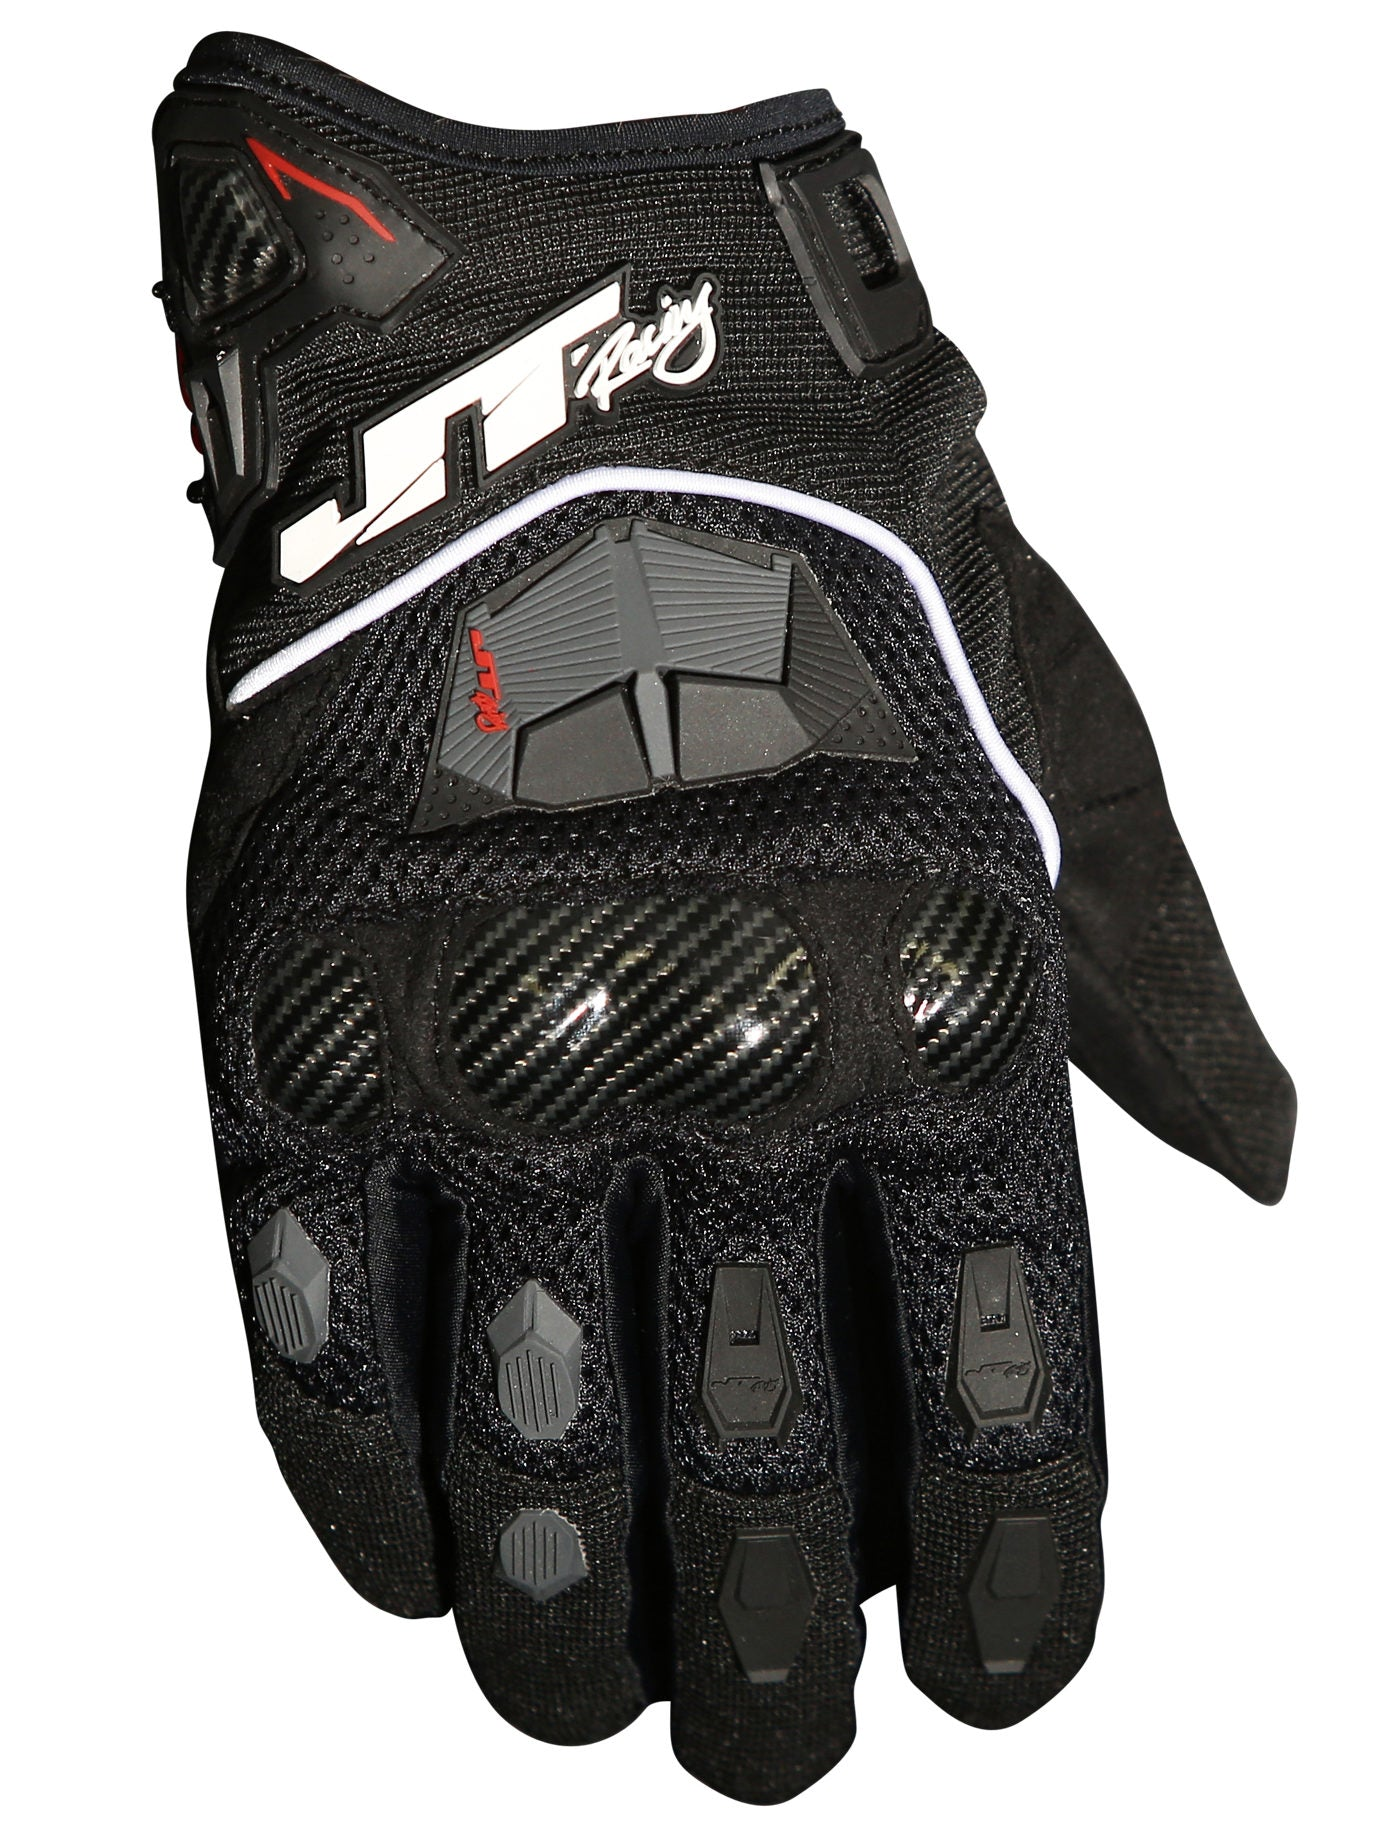 JT Racing USA-Enduro Gloves, Black